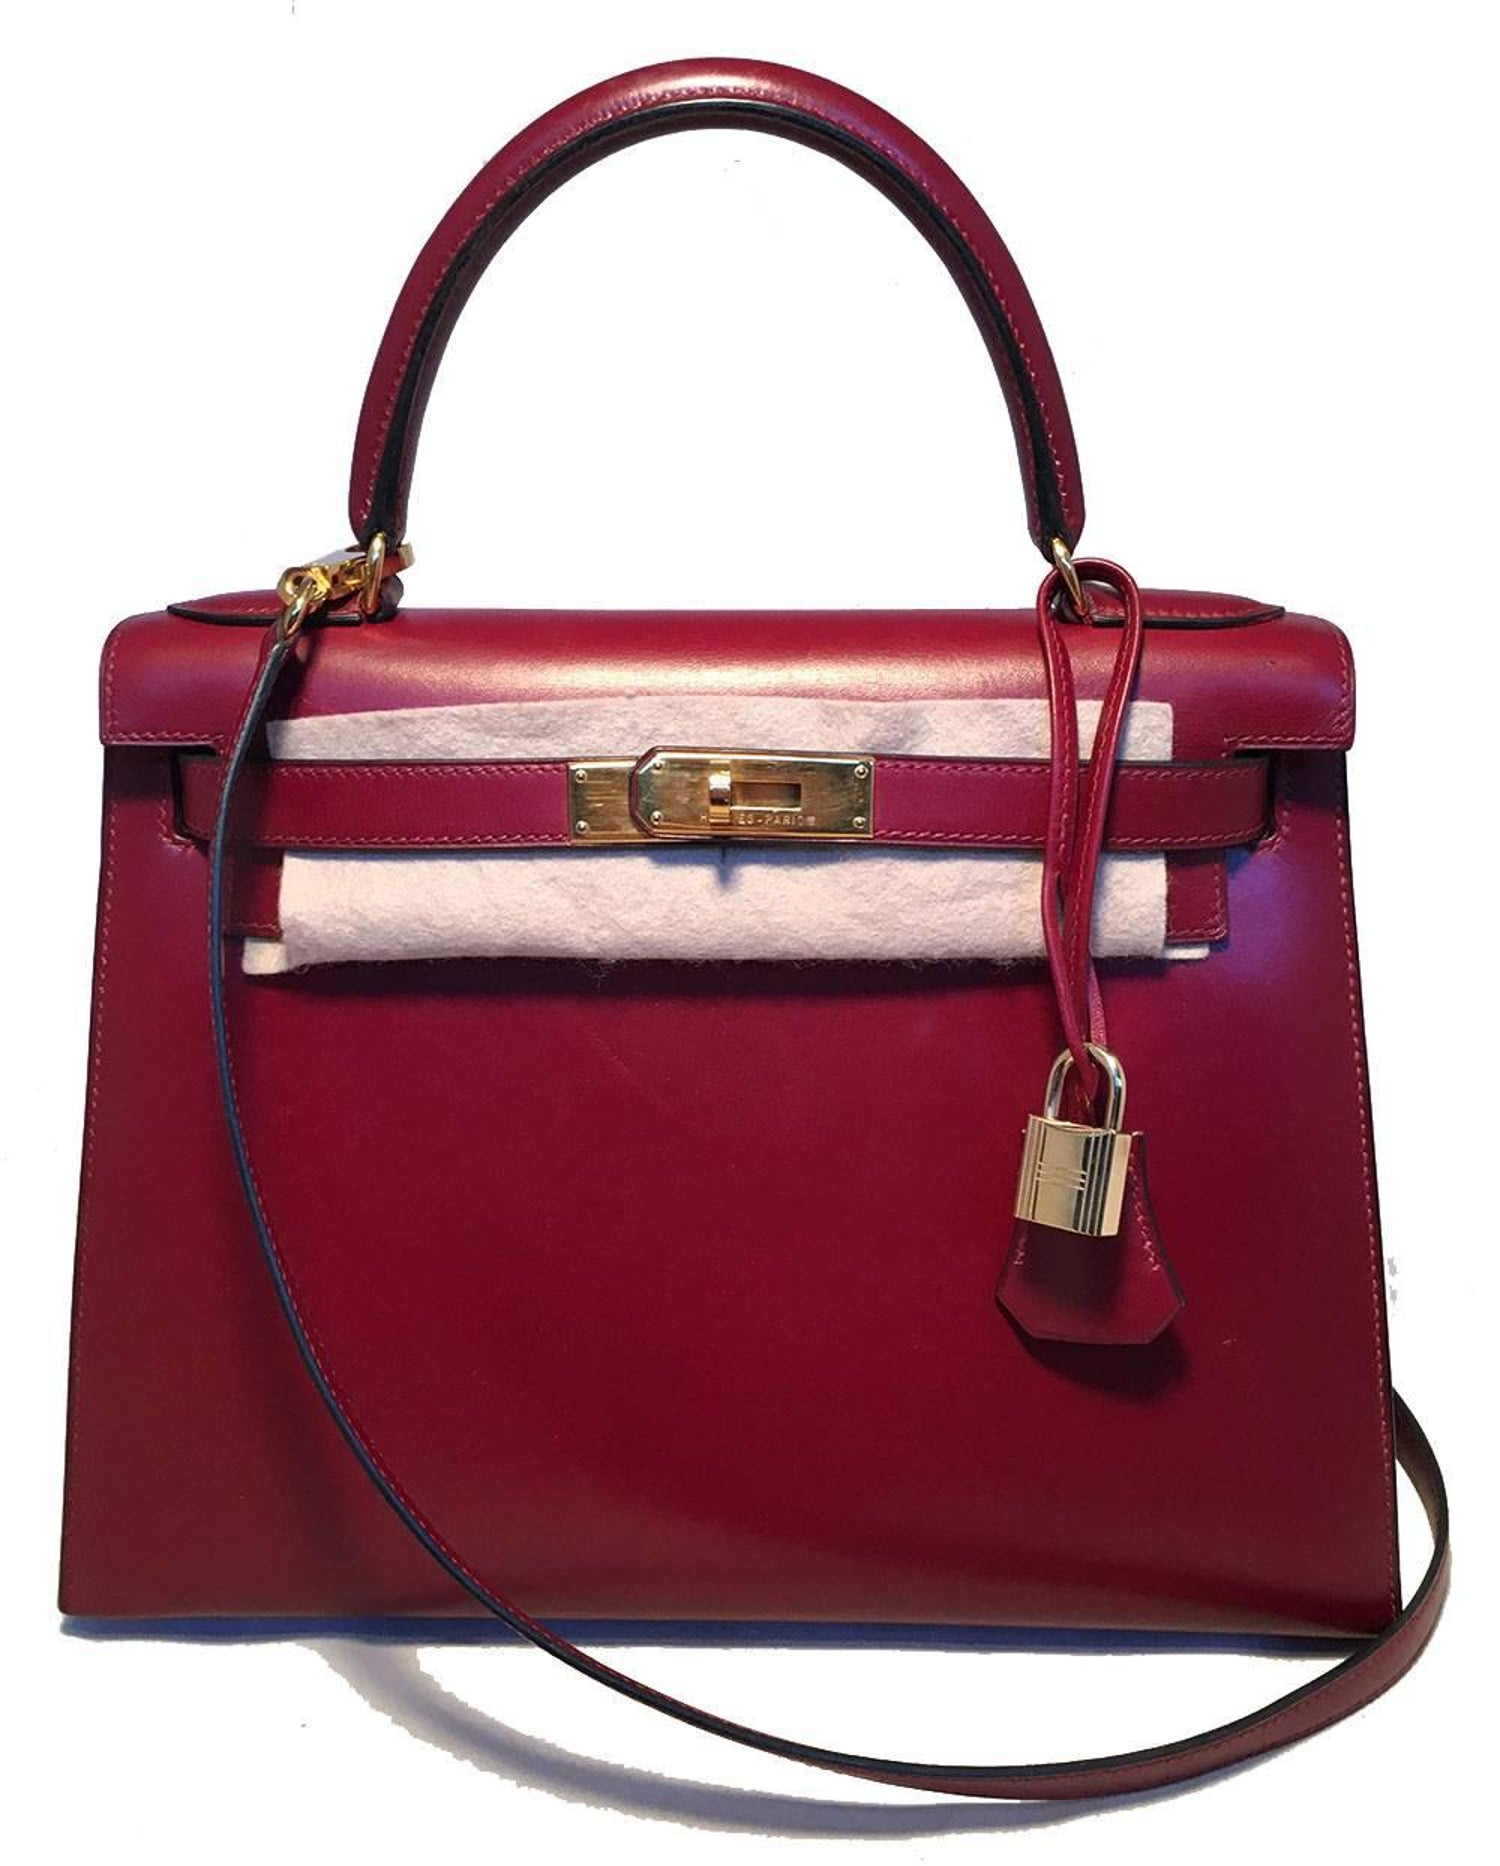 8f6ff83c9a6e Hermes Vintage Rouge Box Calf 28cm Kelly Bag with Strap at 1stdibs